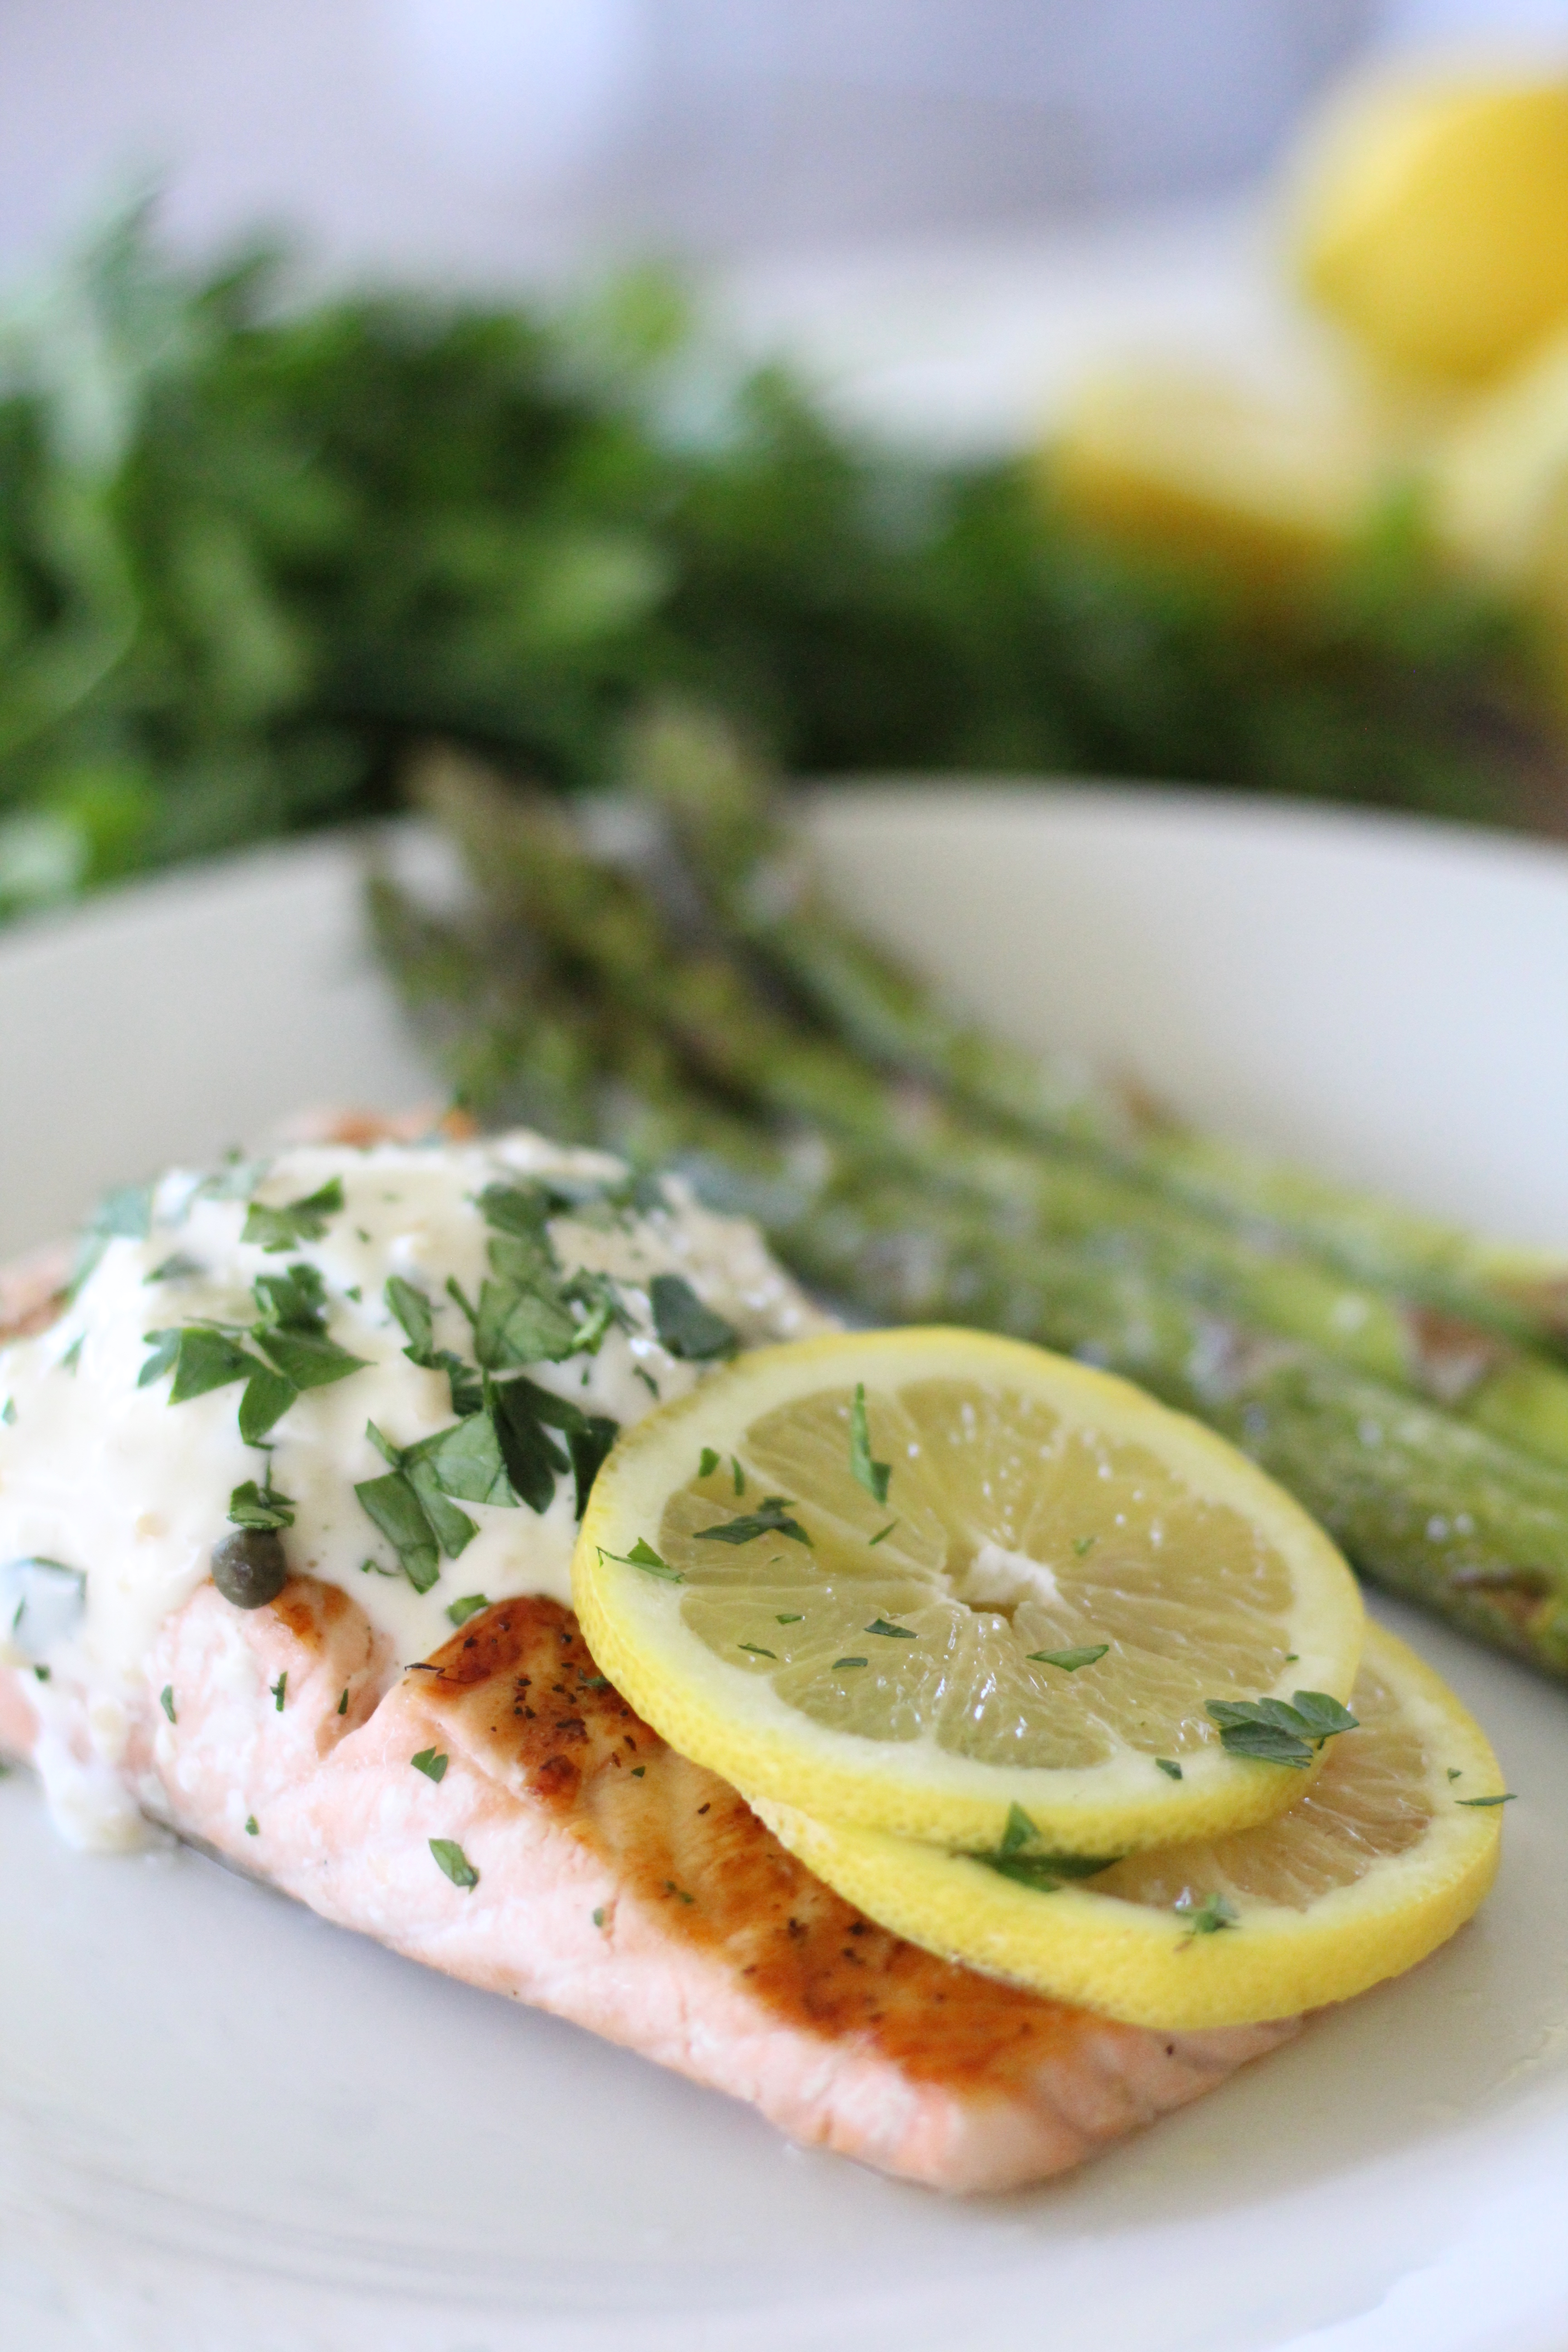 Pan seared Lemon and Herb Salmon with Garlic Aioli, herb goat cheese and asparagus